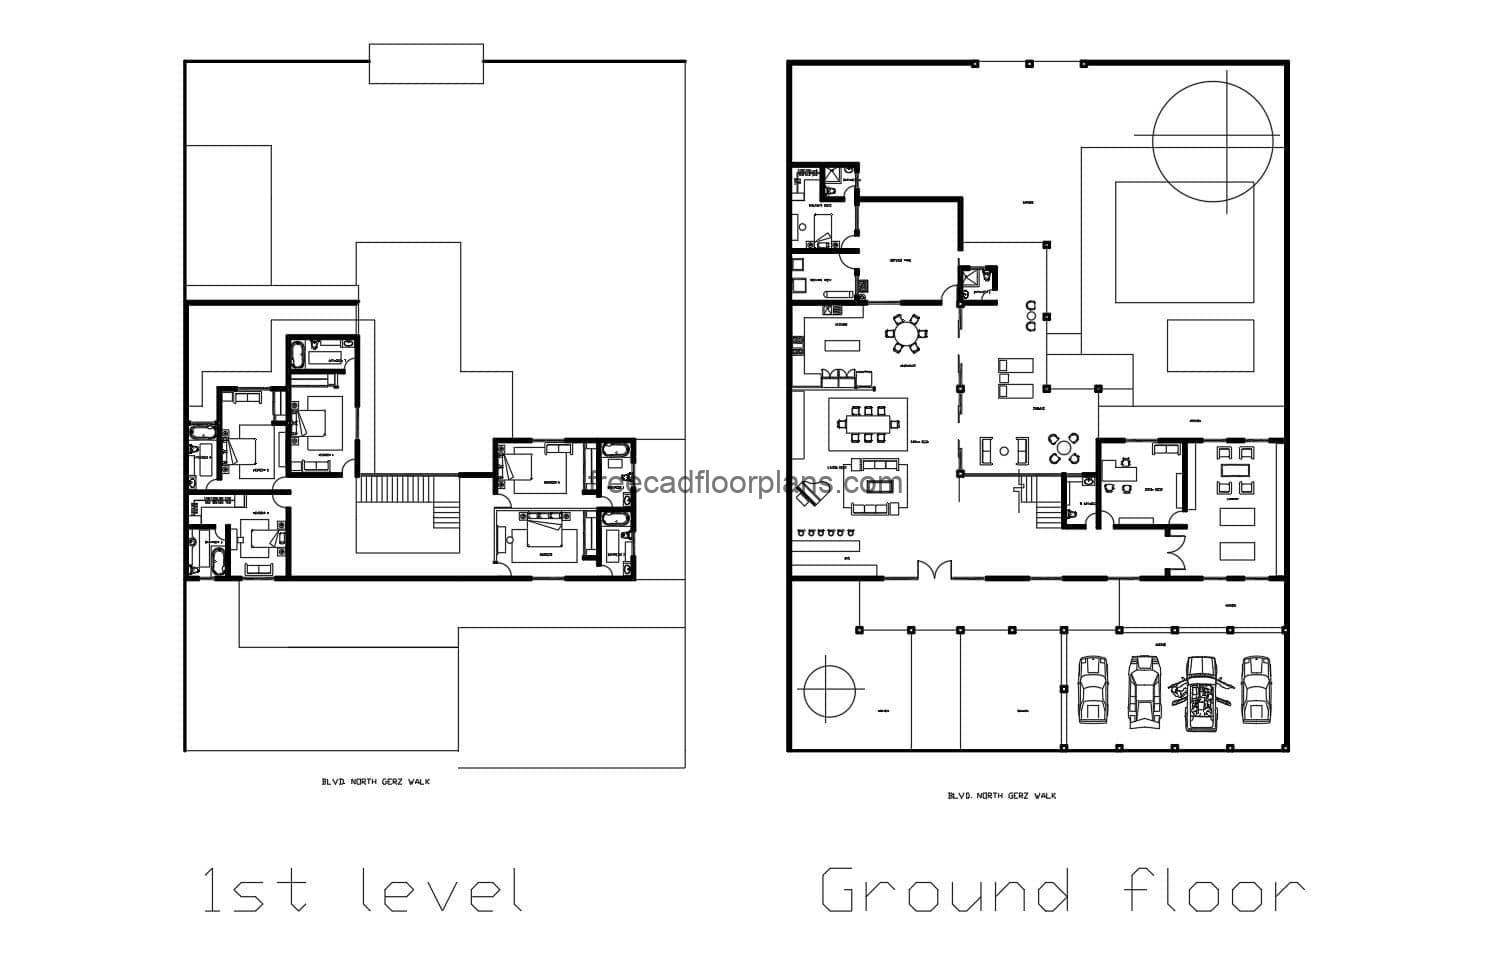 Two-storey house with five rooms architectural layout plans and dimensions in autocad for free download